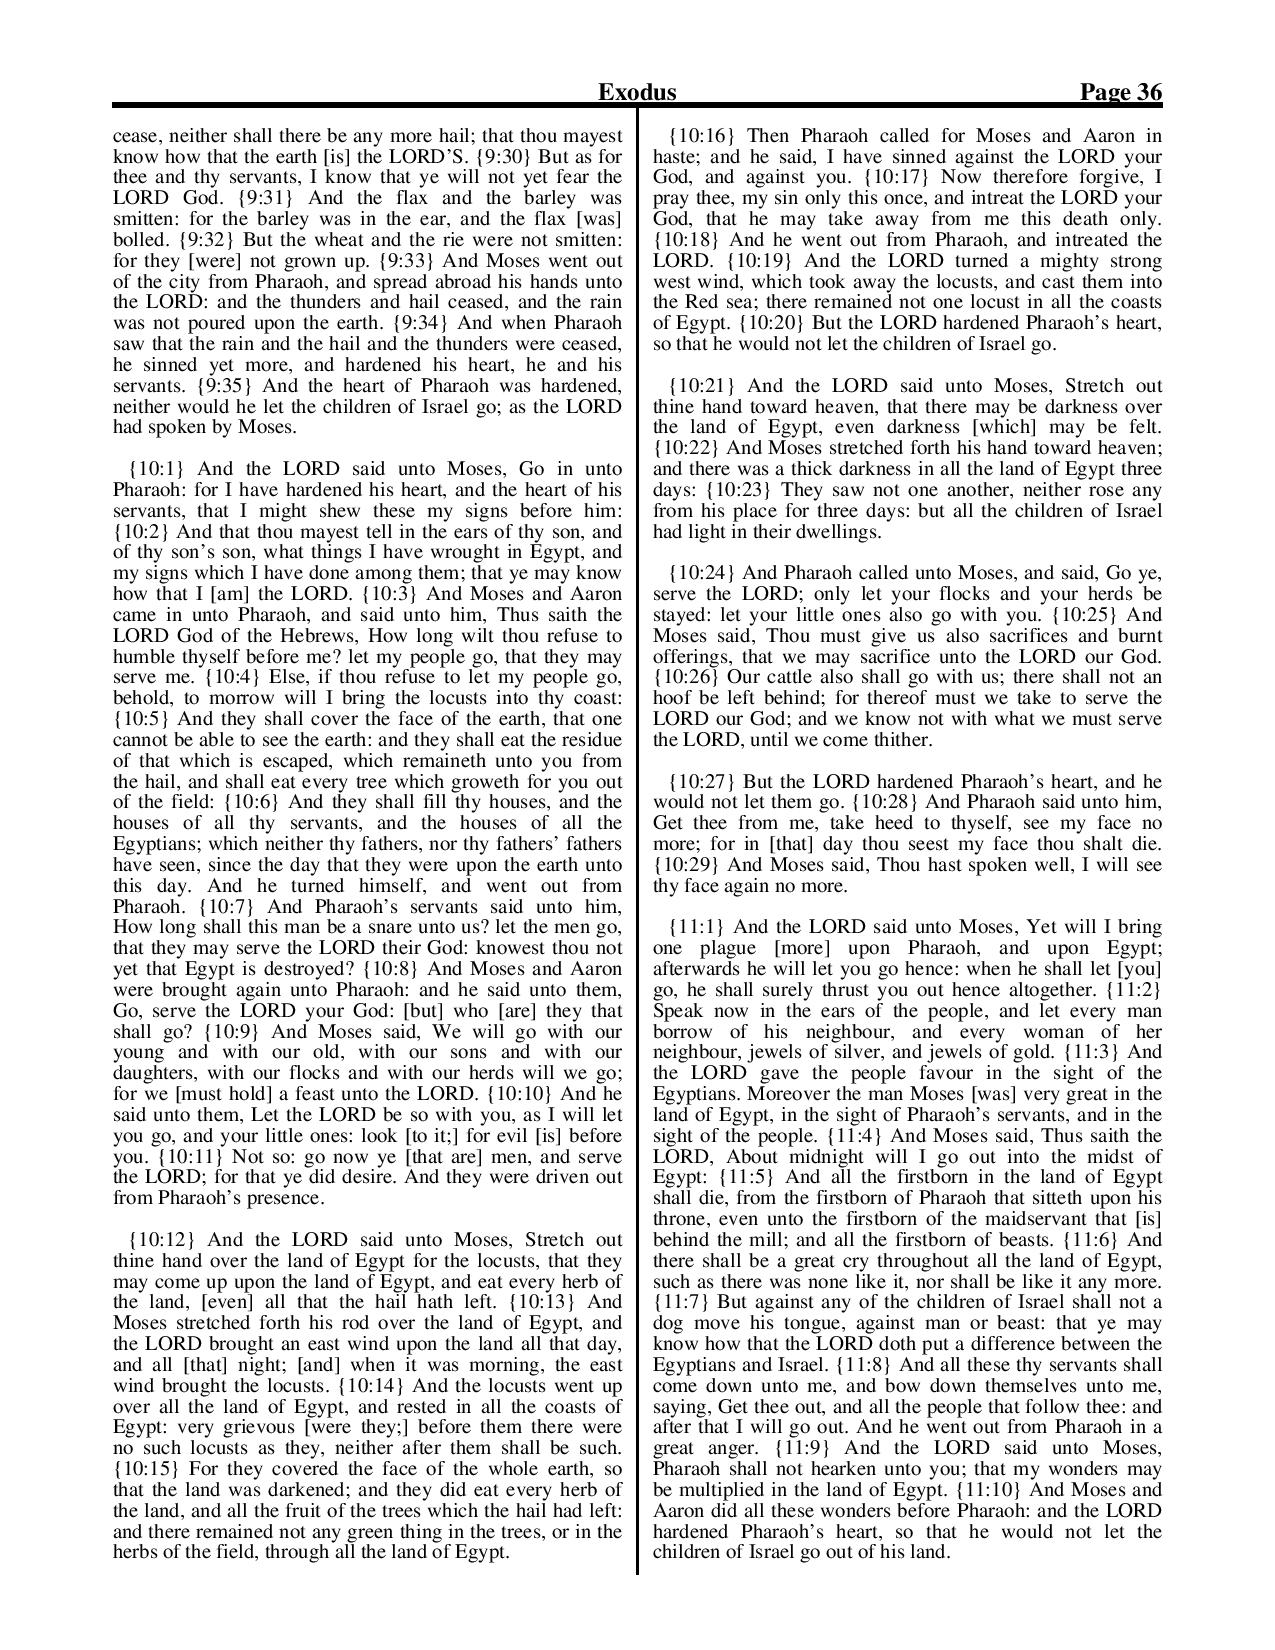 King-James-Bible-KJV-Bible-PDF-page-057